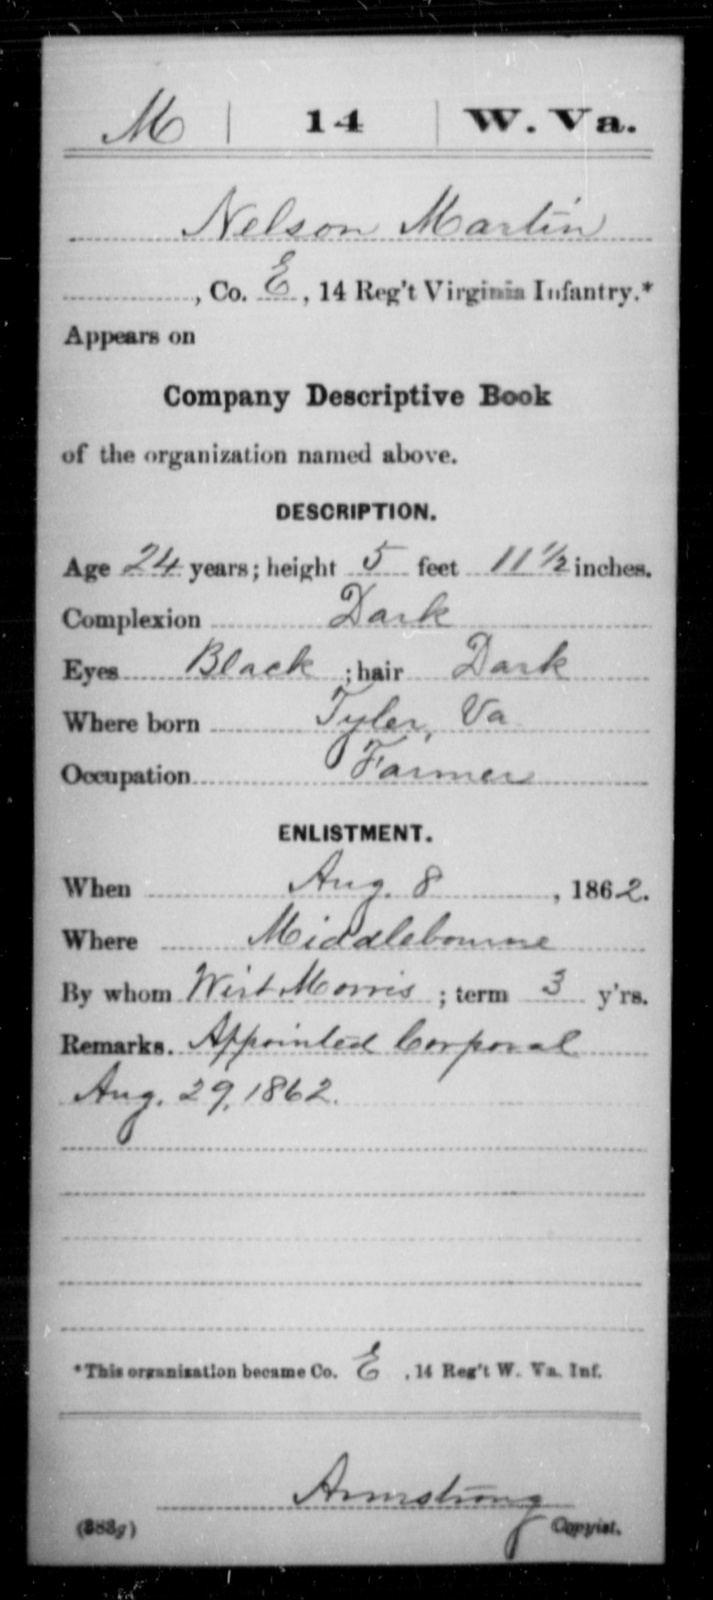 Martin, Nelson - Age 24, Year: 1862 - Miscellaneous Card Abstracts of Records - West Virginia